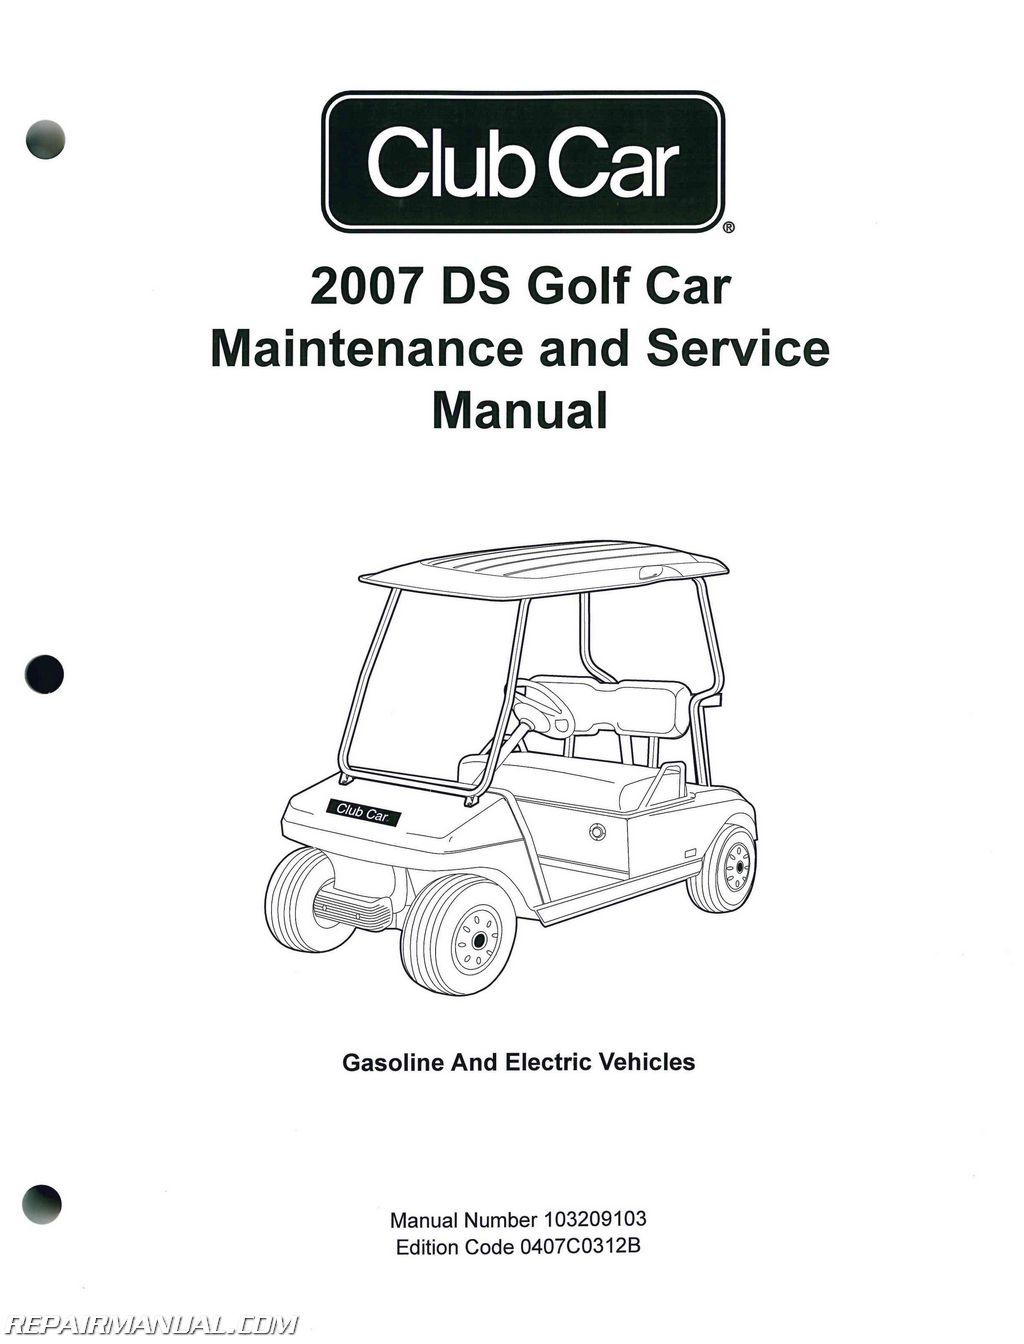 2007 Club Car DS Golf Car Gas And Electric Golf Cart